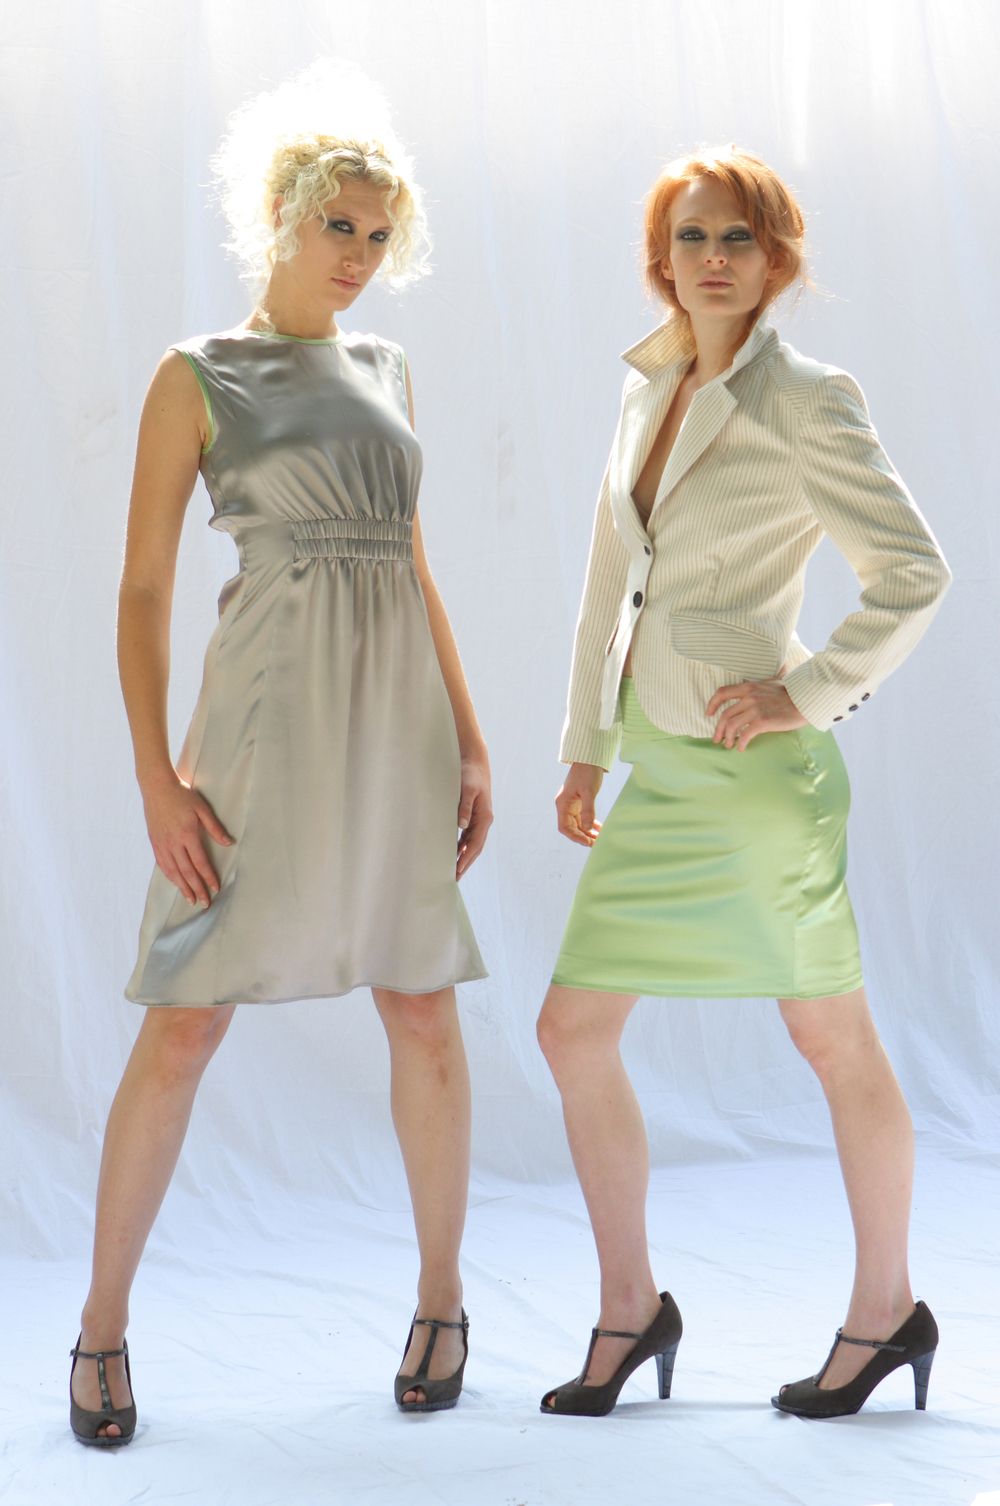 Shirred Waist Sheath Dress in Silver Silk Charmeuse.  Shrunken Blazer in Pinstriped Italian Cotton Twill.   Quilt Waist Mini Skirt in Lime Silk Charmeuse.